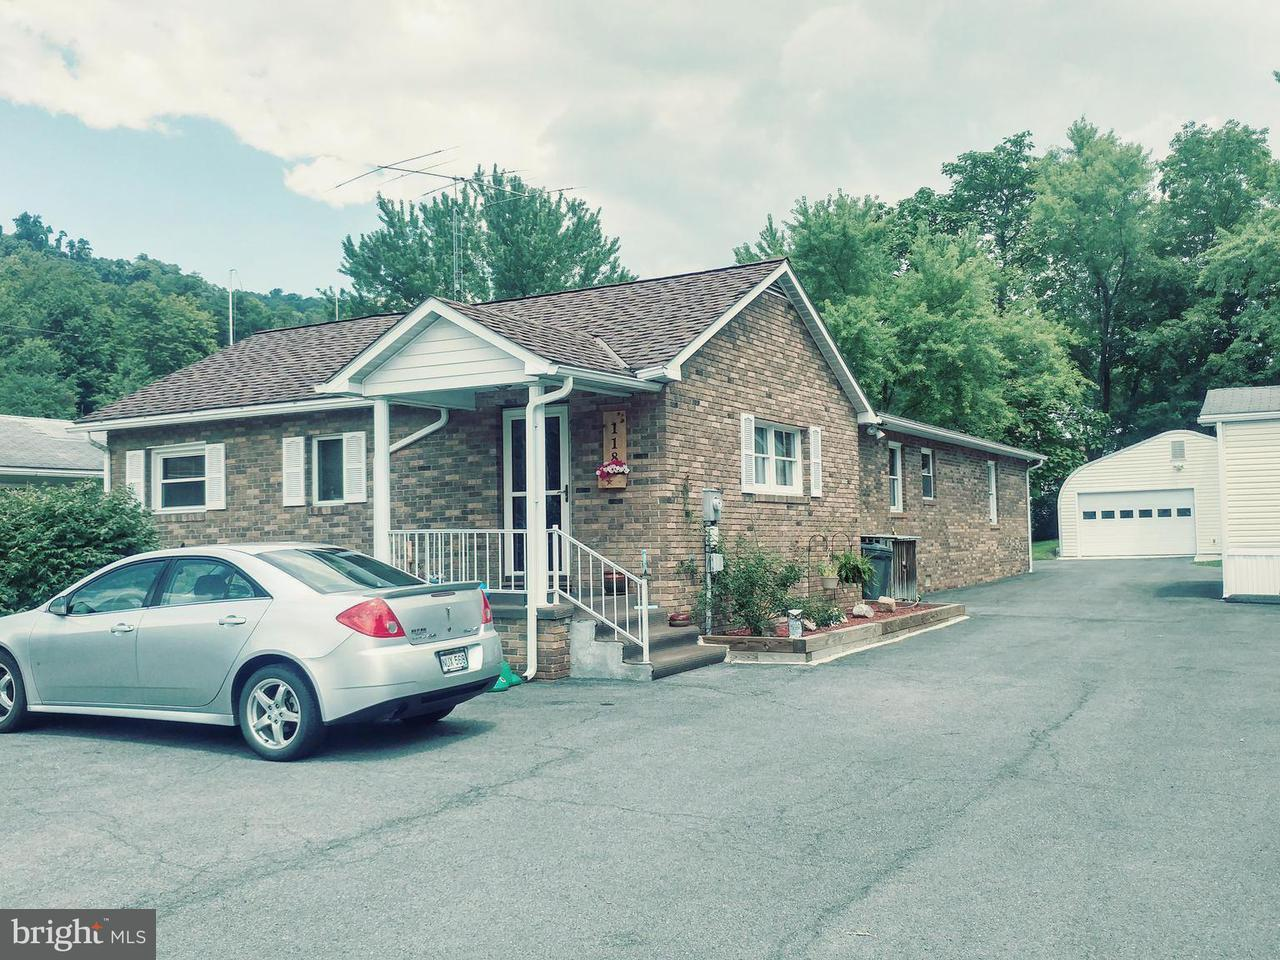 Single Family for Sale at 116 Rocket Center Rd Short Gap, West Virginia 26726 United States